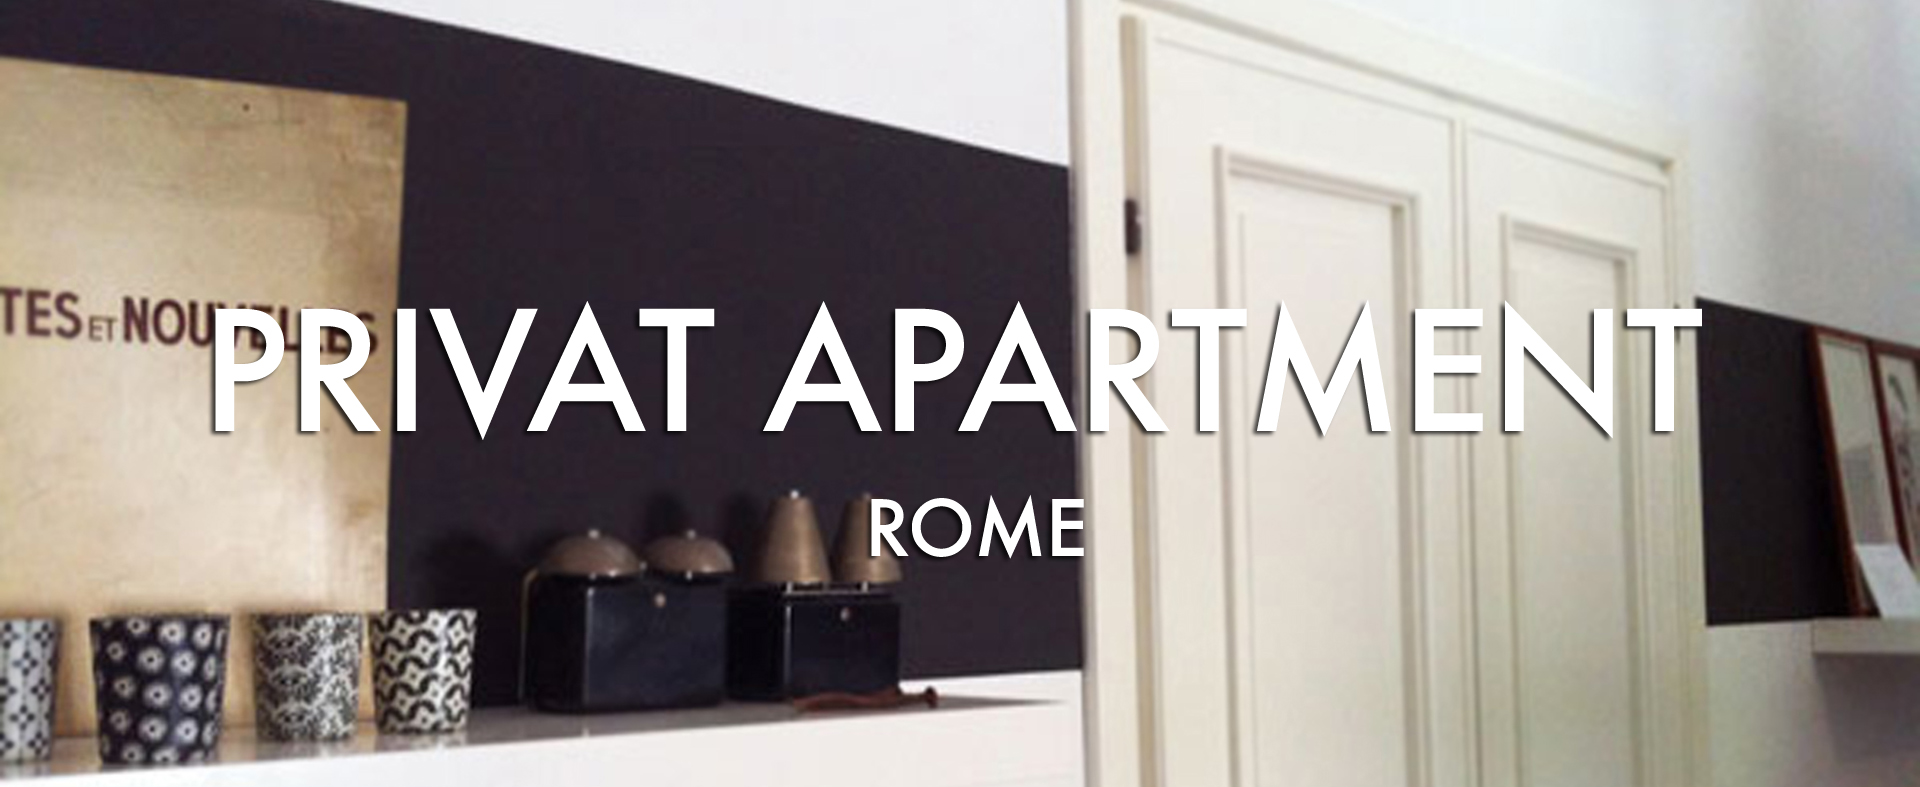 Private apartment ROME